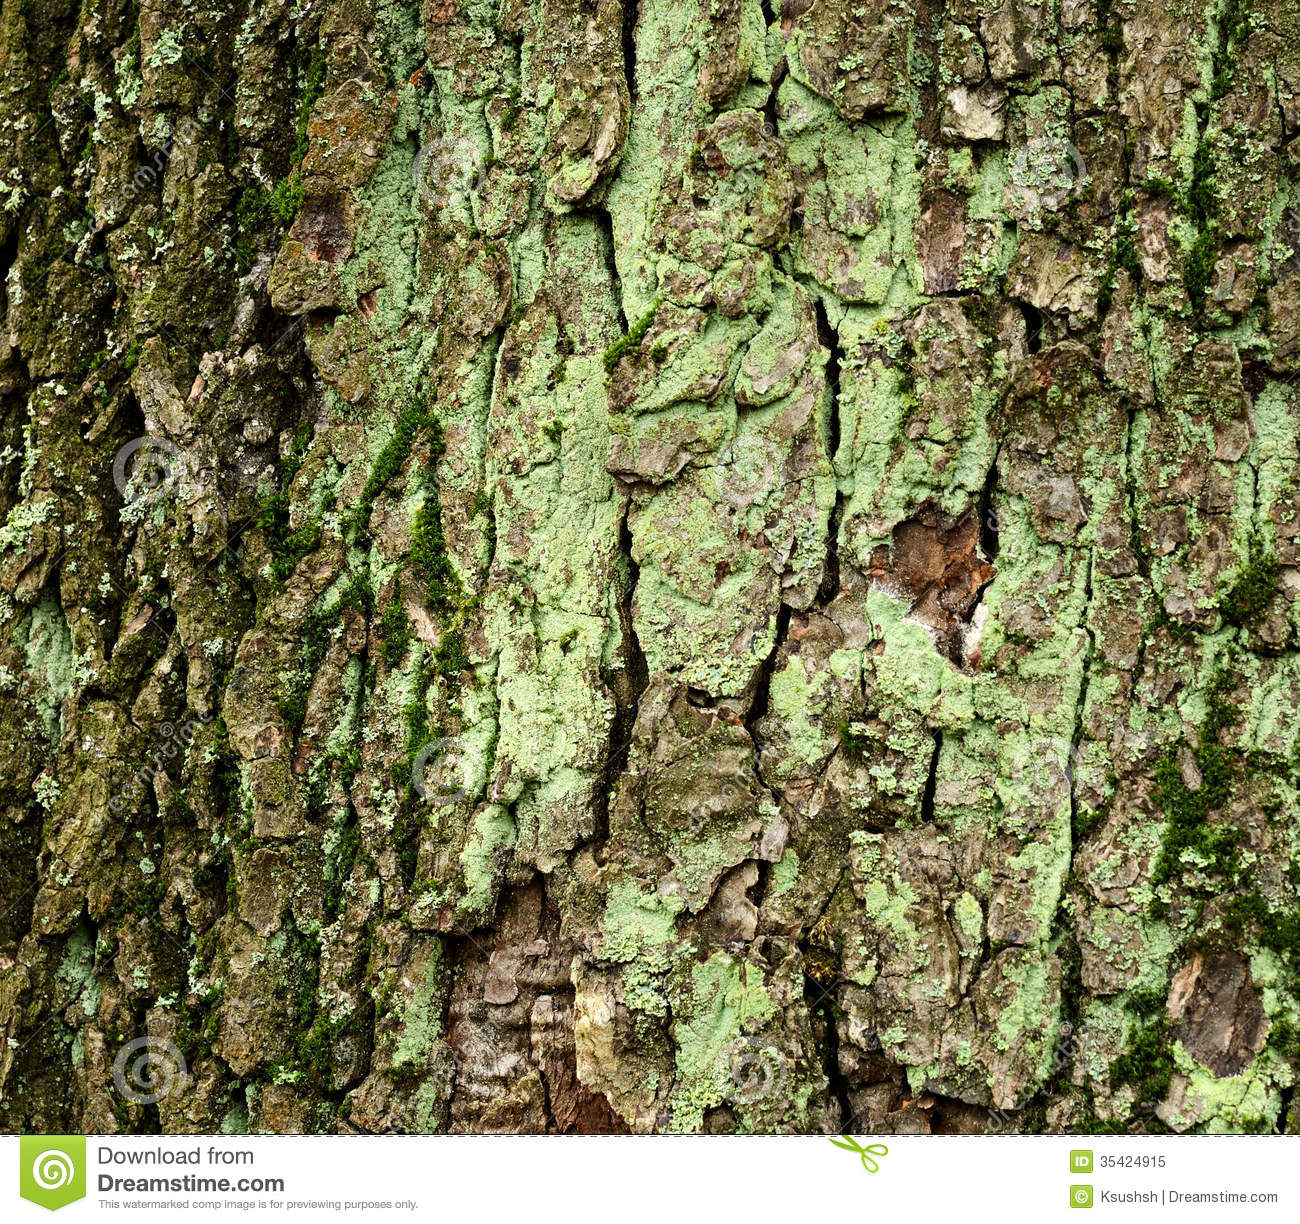 Moss covered tree bark royalty free stock photo image for What is a tree trunk covered with 4 letters